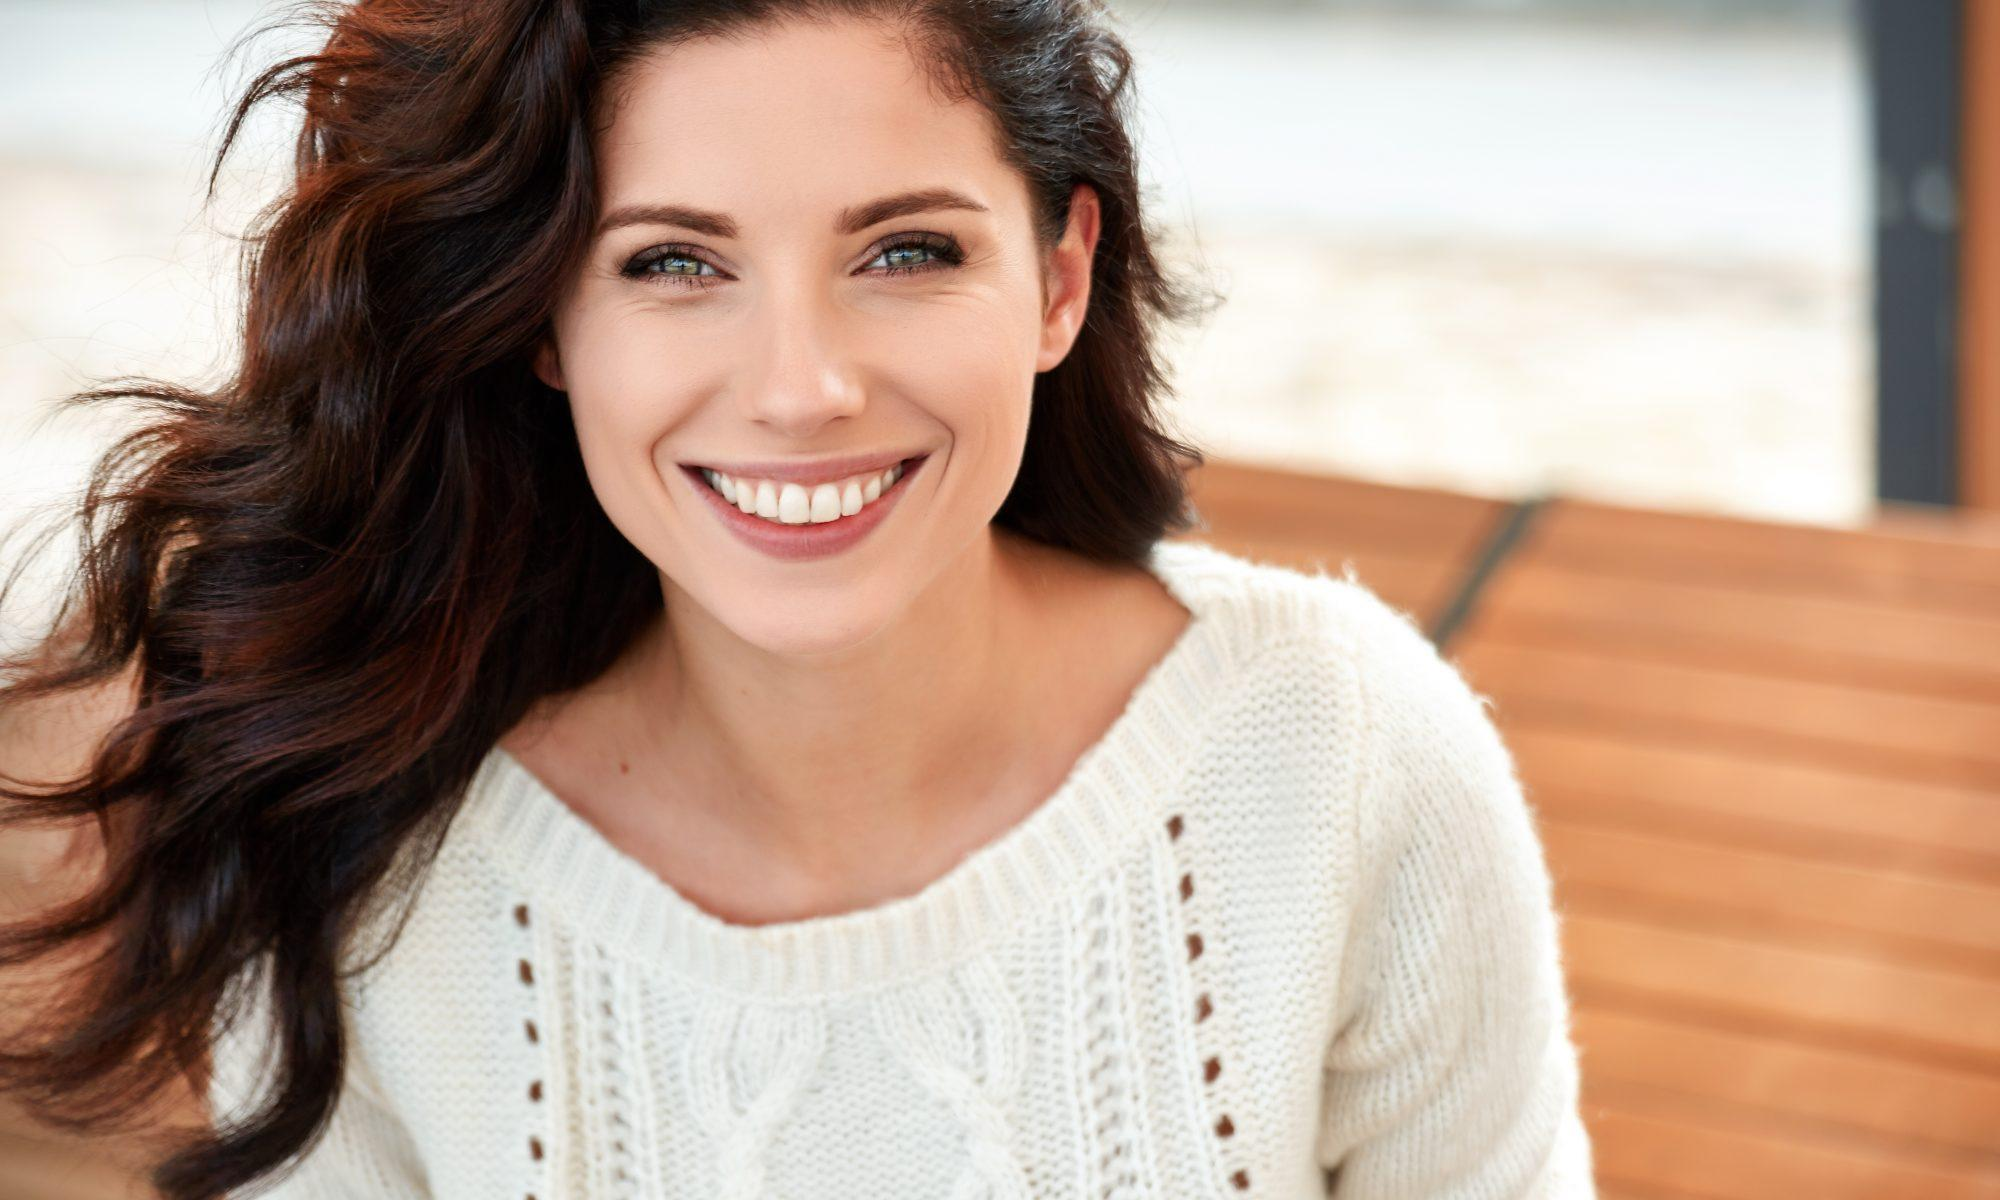 Woman with straight teeth and cream jumper